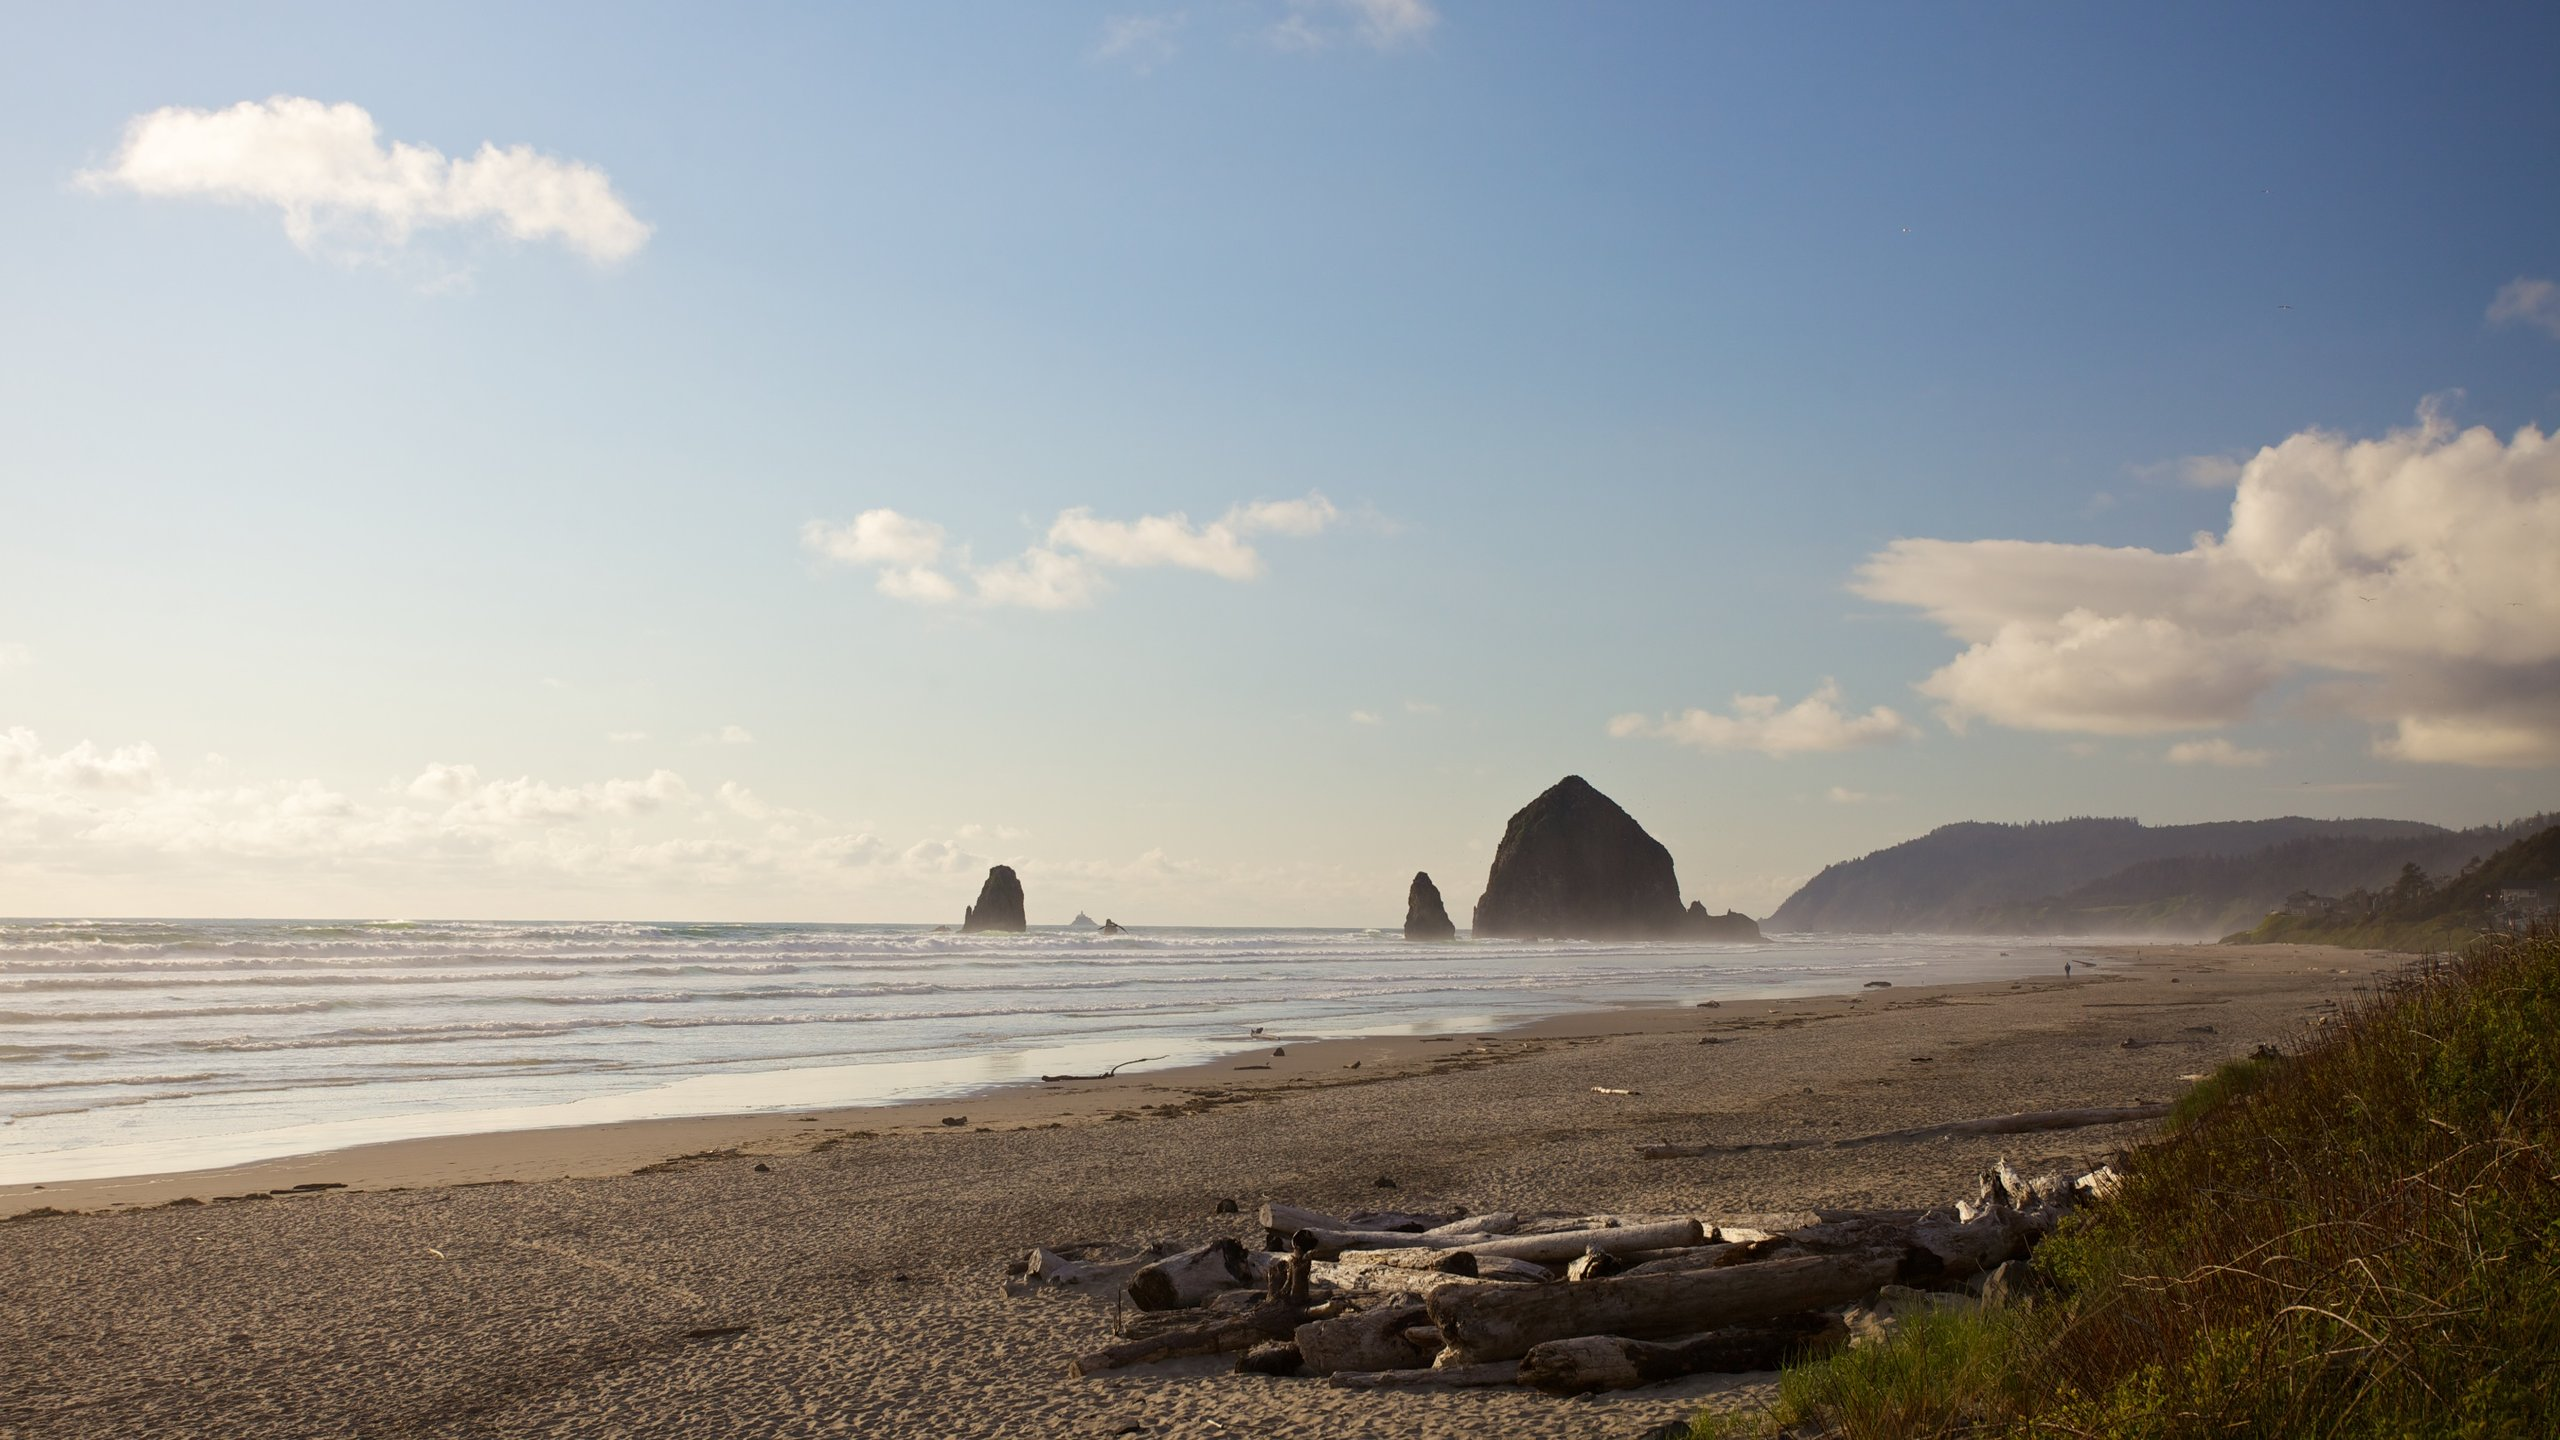 Find out about the history of Cannon Beach when you spend time at Haystack Rock. Wander the beautiful beaches and seaside in this family-friendly area.